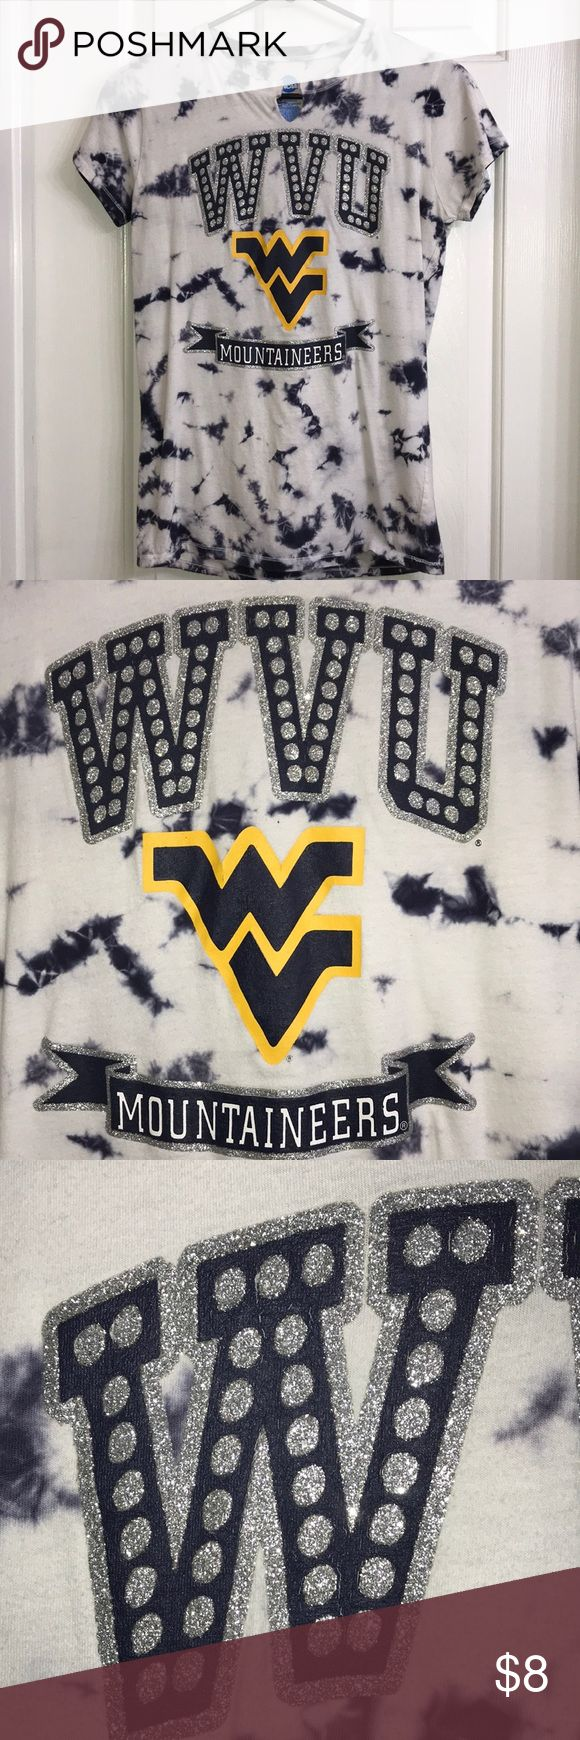 Women's WVU T-shirt Blue and white WVU T-shirt with some silver bling. Good shape. Tops Tees - Short Sleeve